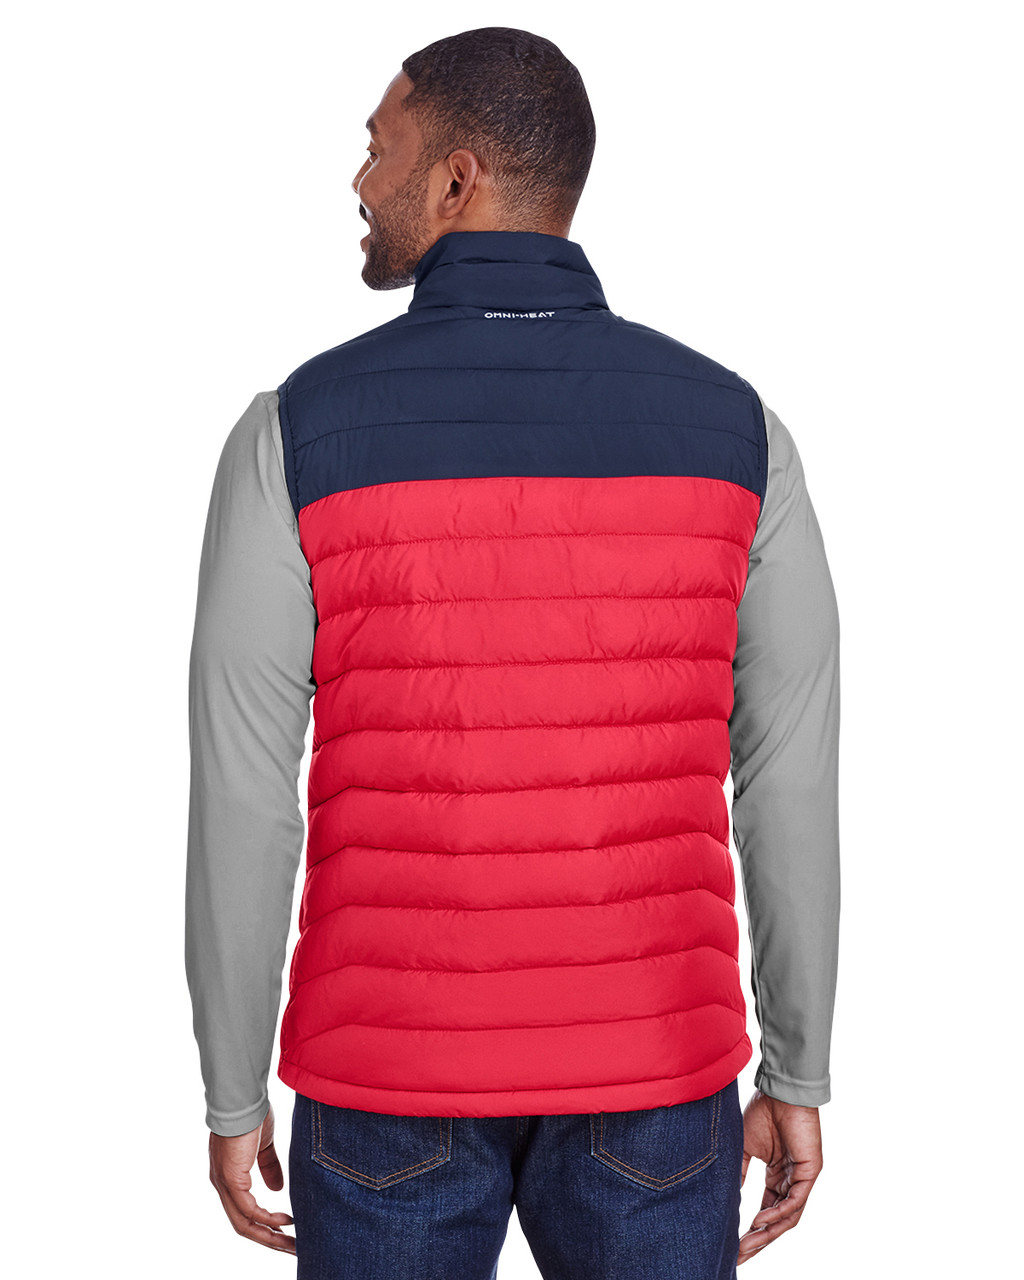 Mountain Red/Columbia Navy - Back, 1748031 Columbia Men's Powder Lite™ Vest | Blankclothing.ca